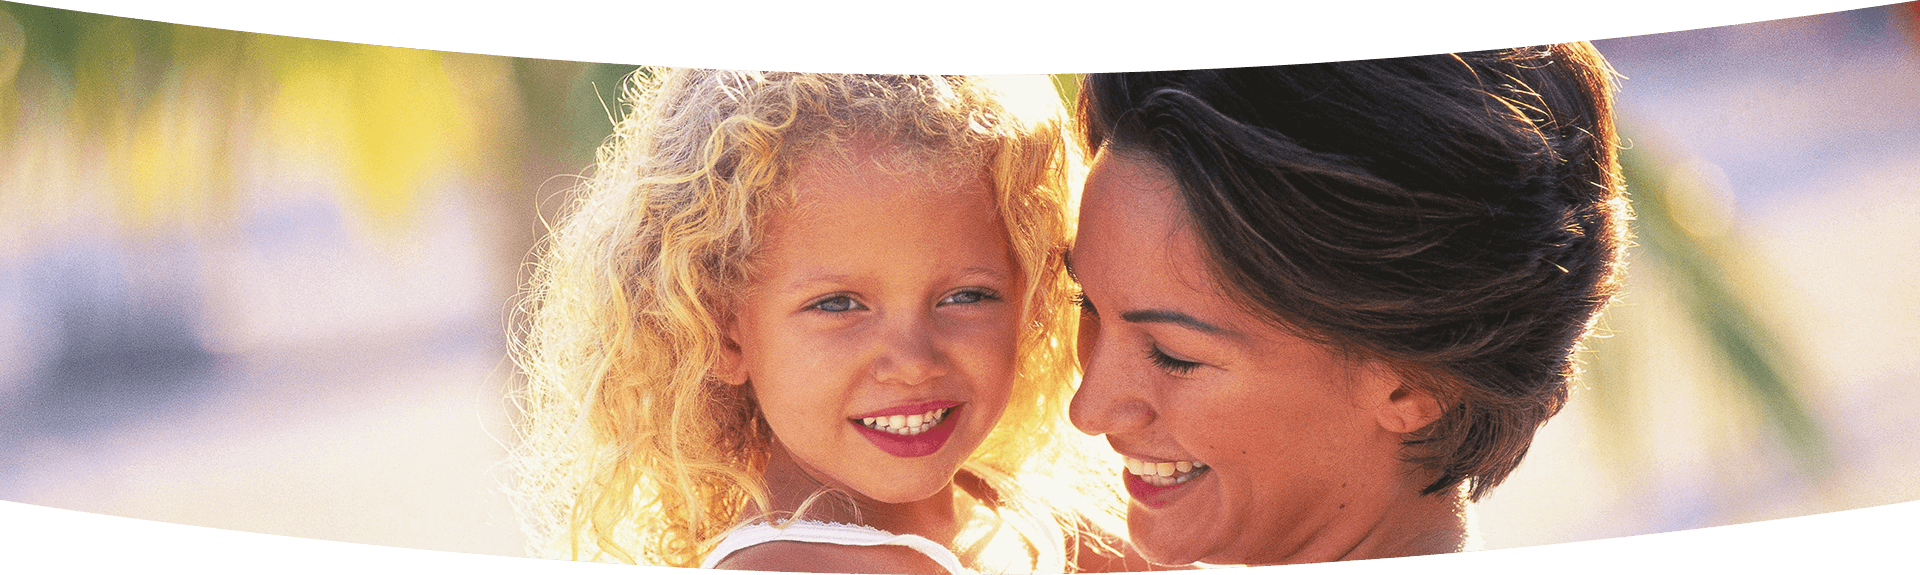 Dentist Calgary - Mother and daughter 2